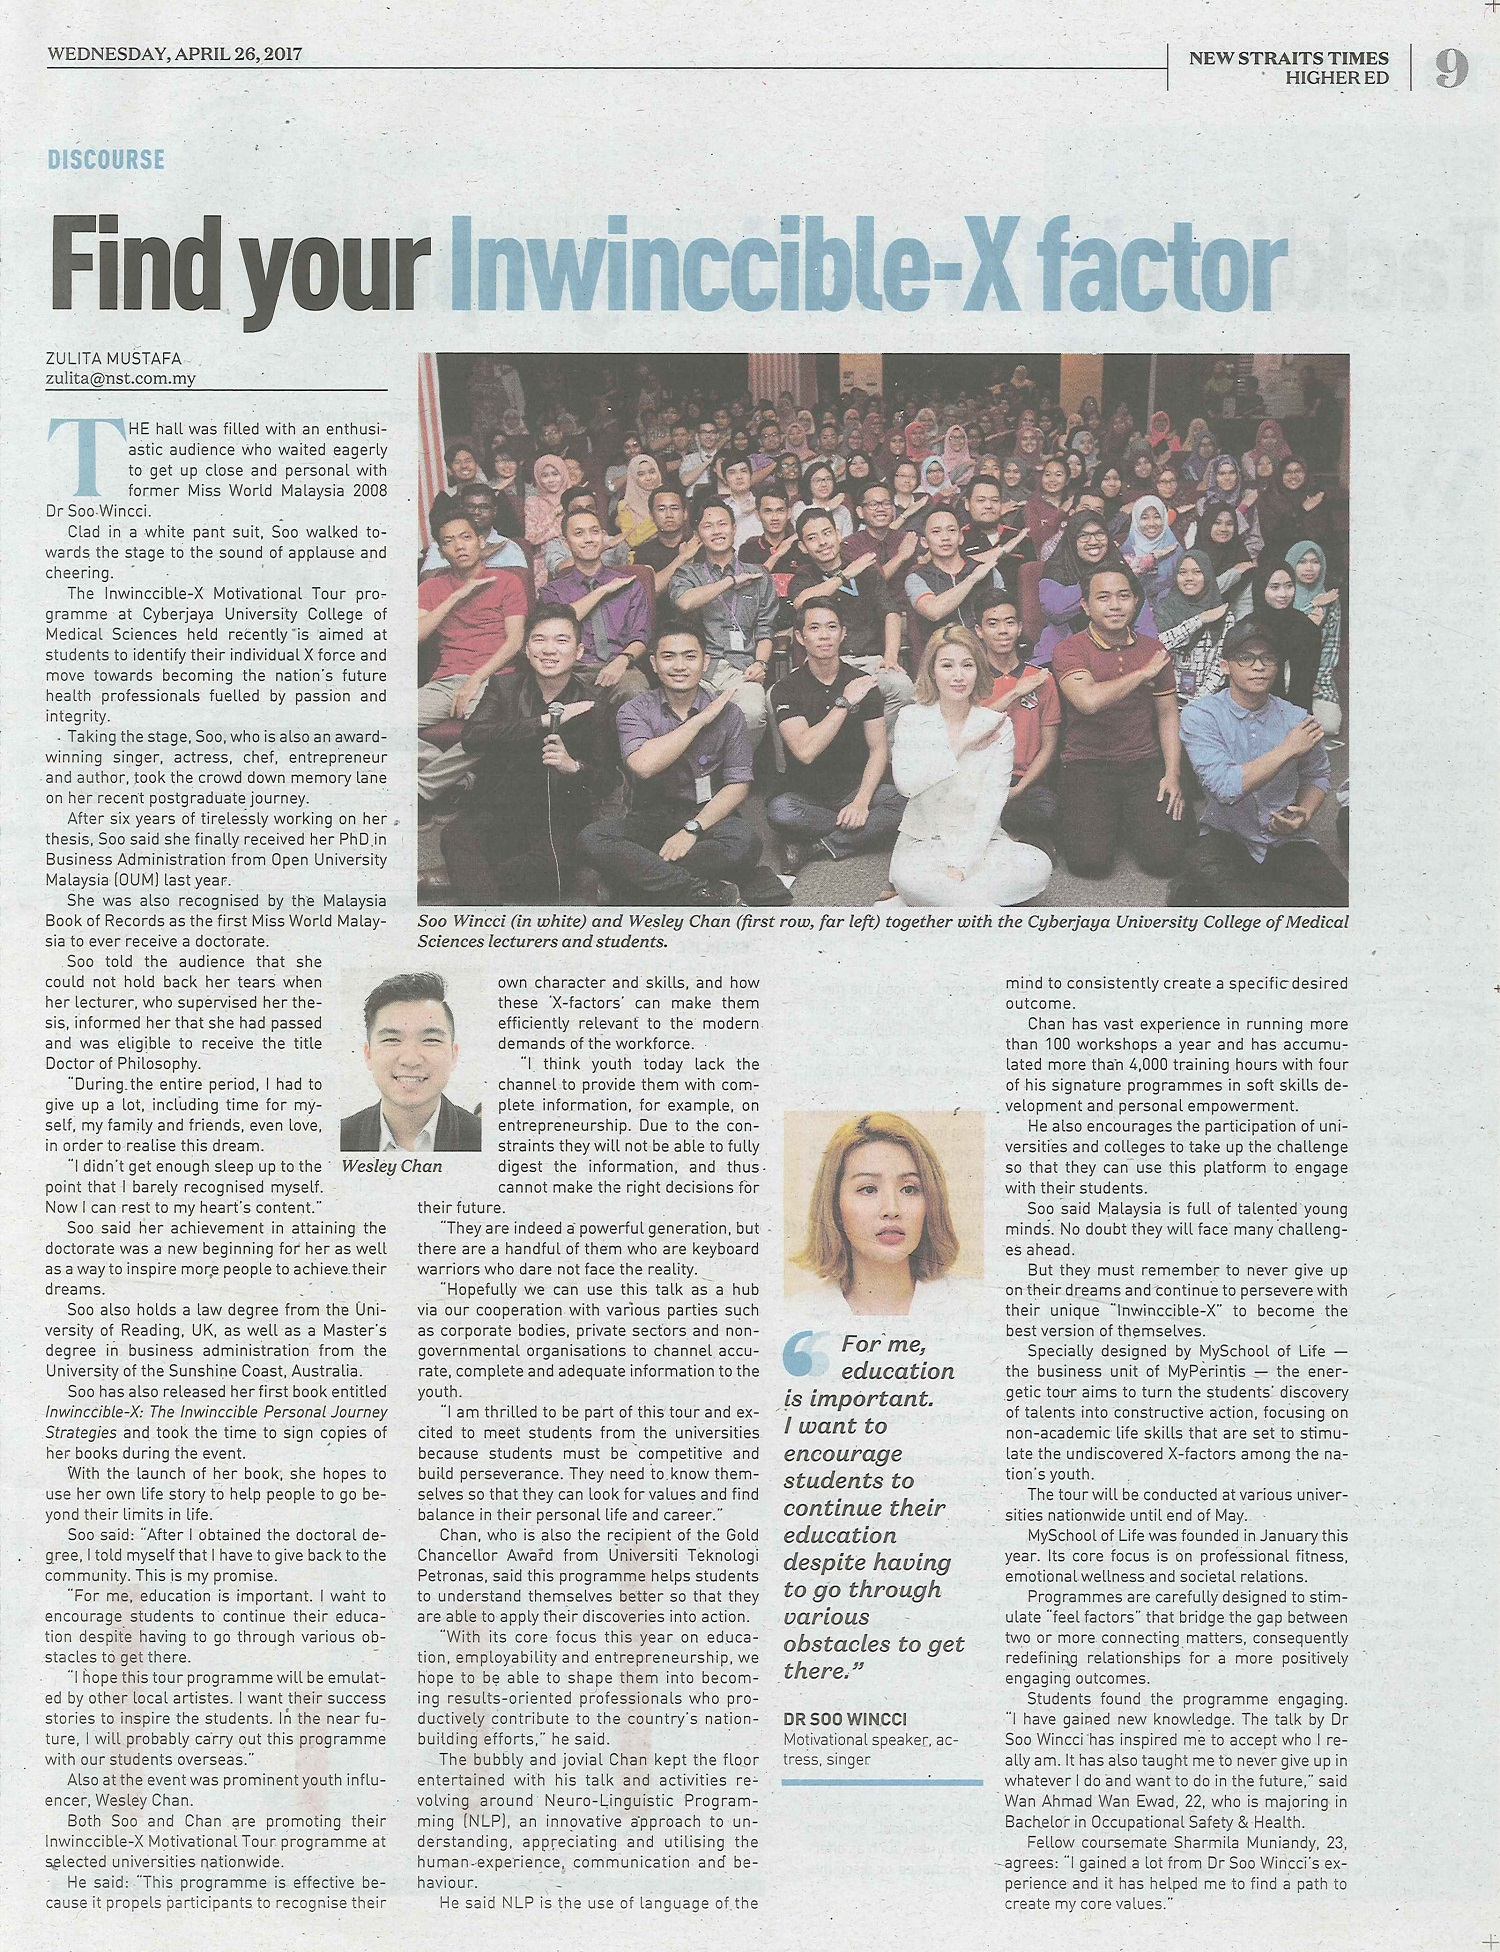 Find your Inwinccible-X factor